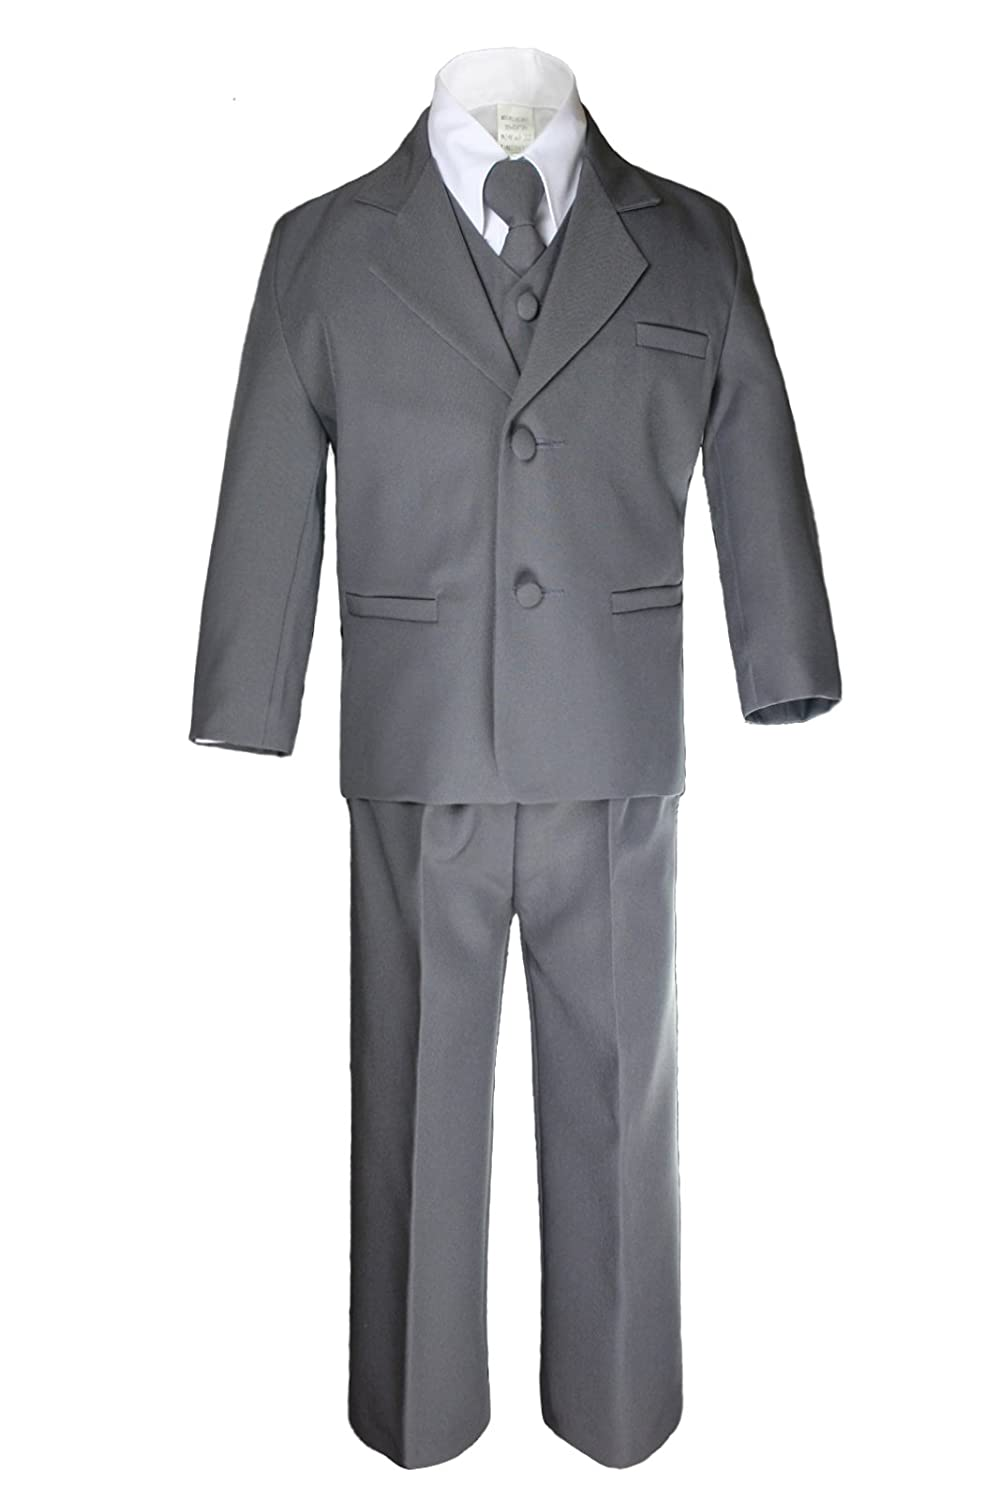 Unotux Formal Boys Dark Gray Suits From Baby to Teen 2T